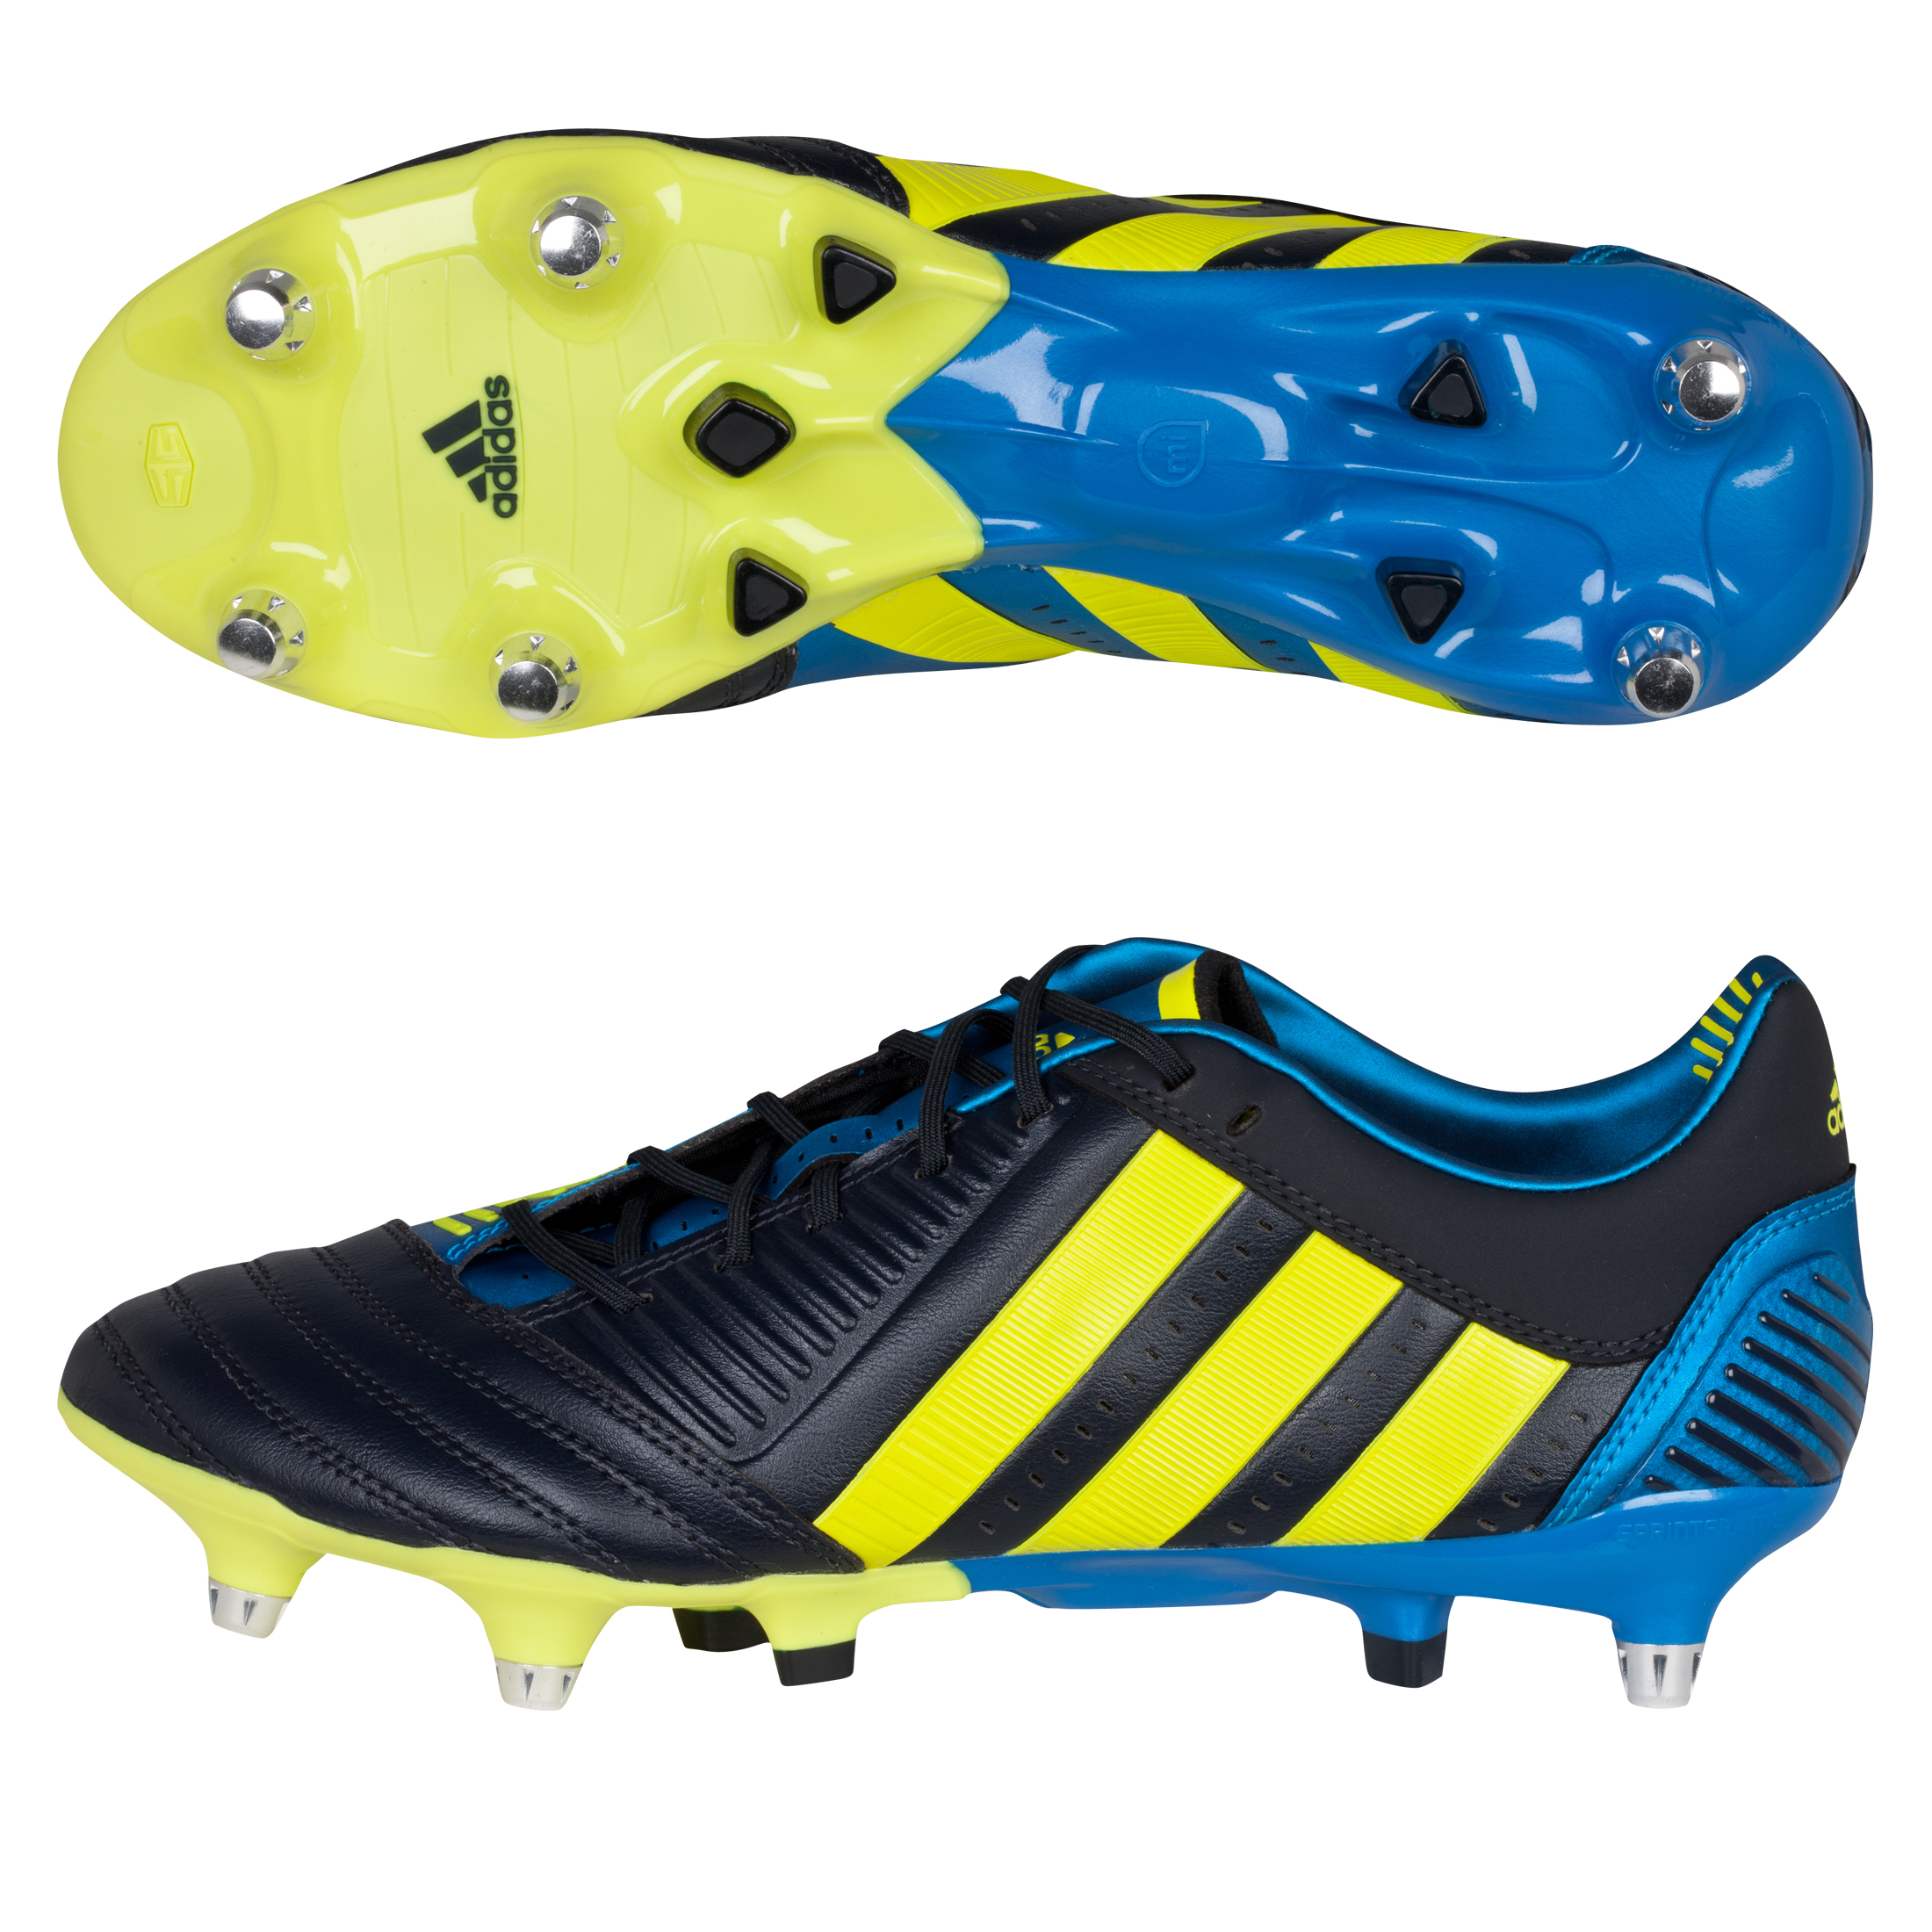 adidas Predator Incurza XTRX Soft Ground Rugby Boots - Punjab/Lab Lime/Bright Blue